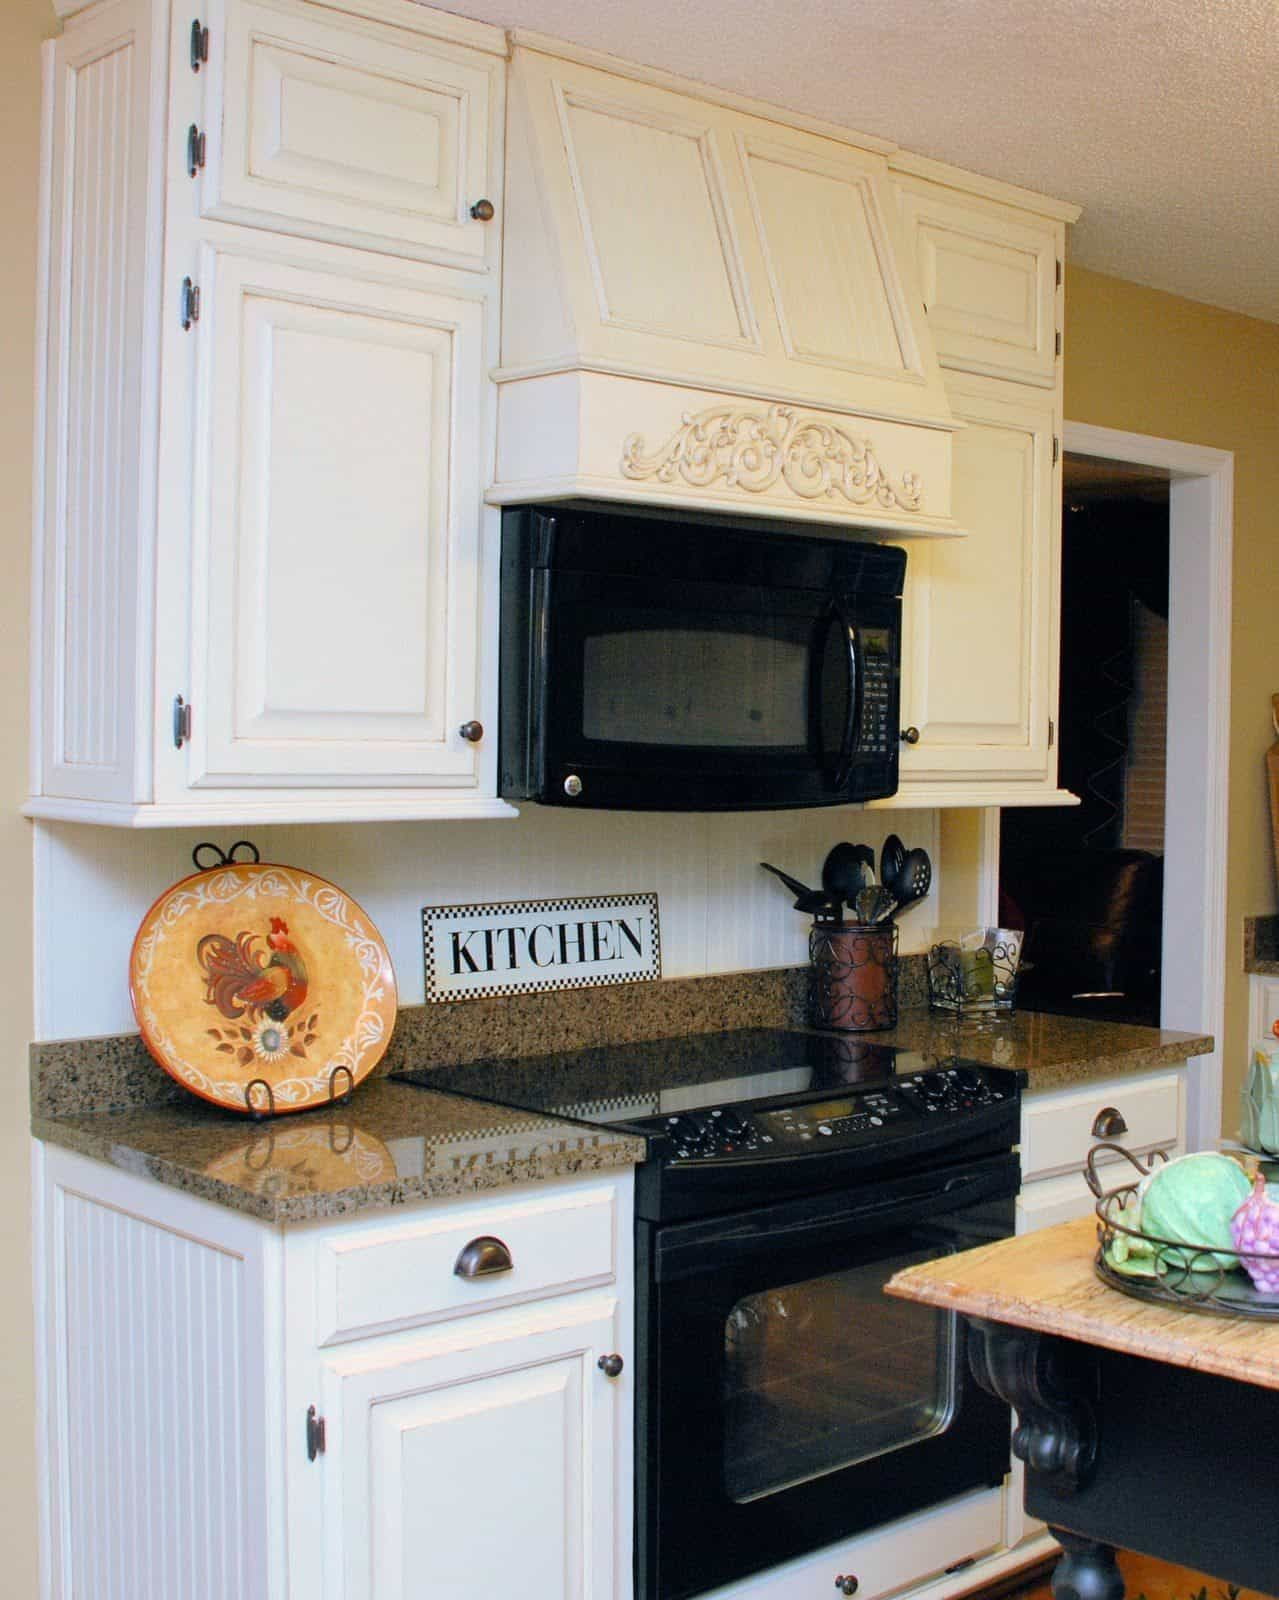 The Most Sought And Useful Microwave Range Hoods Kitchen Appliances Design Microwave In Kitchen Tuscan Kitchen